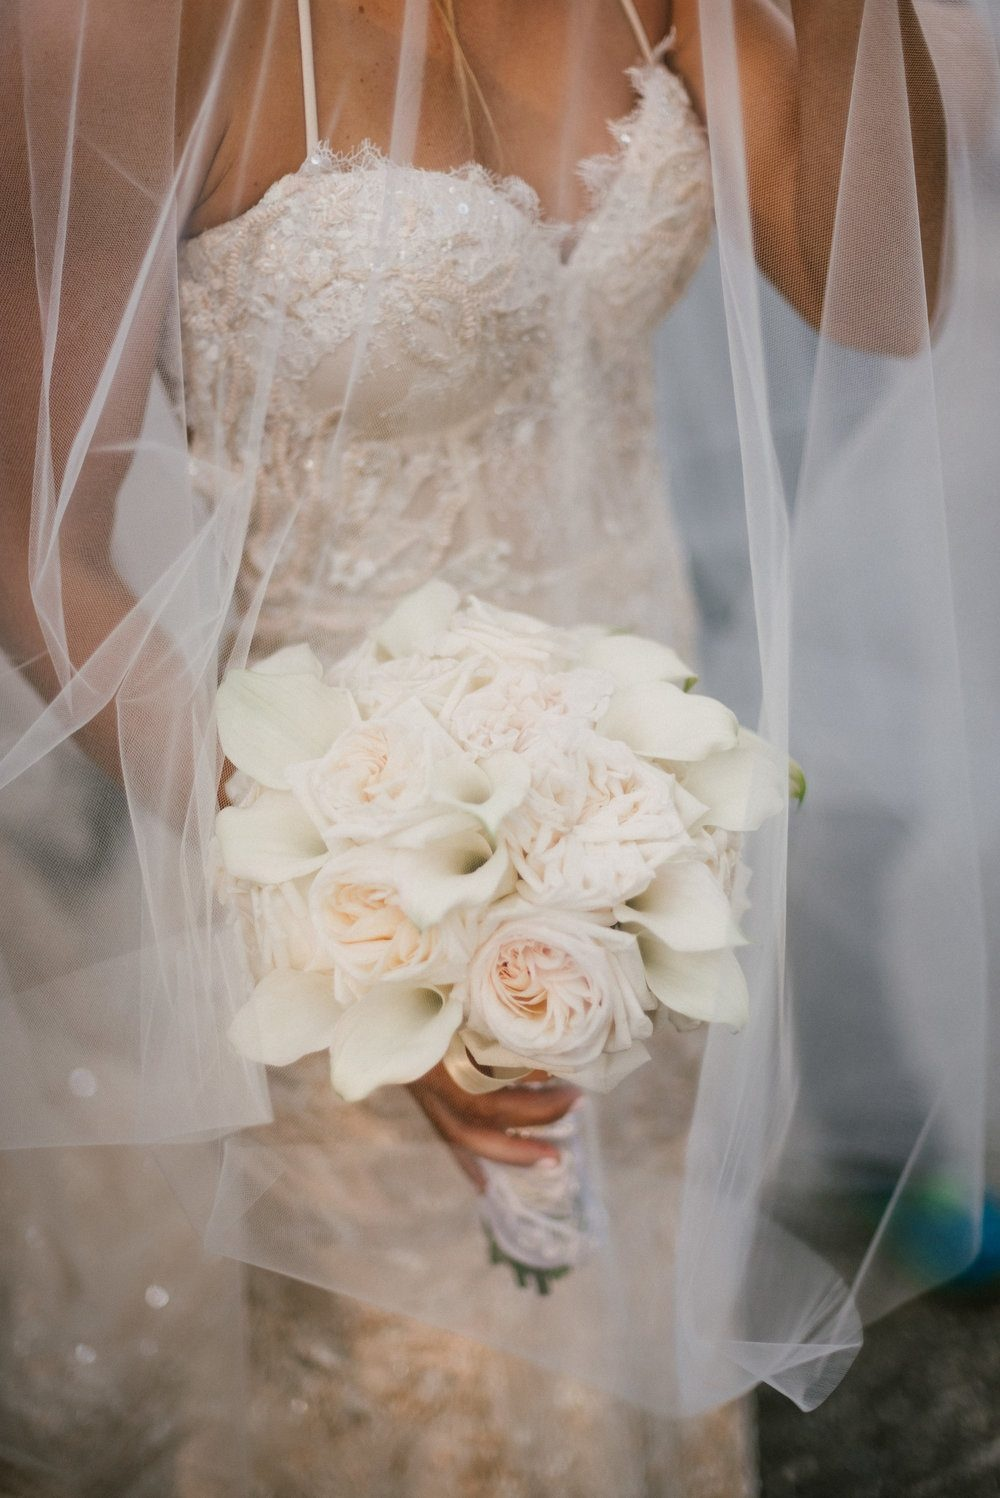 https://0201.nccdn.net/4_2/000/000/023/130/industrial-wedding-vibes-miami-nuptials-05-1000x1498.jpg